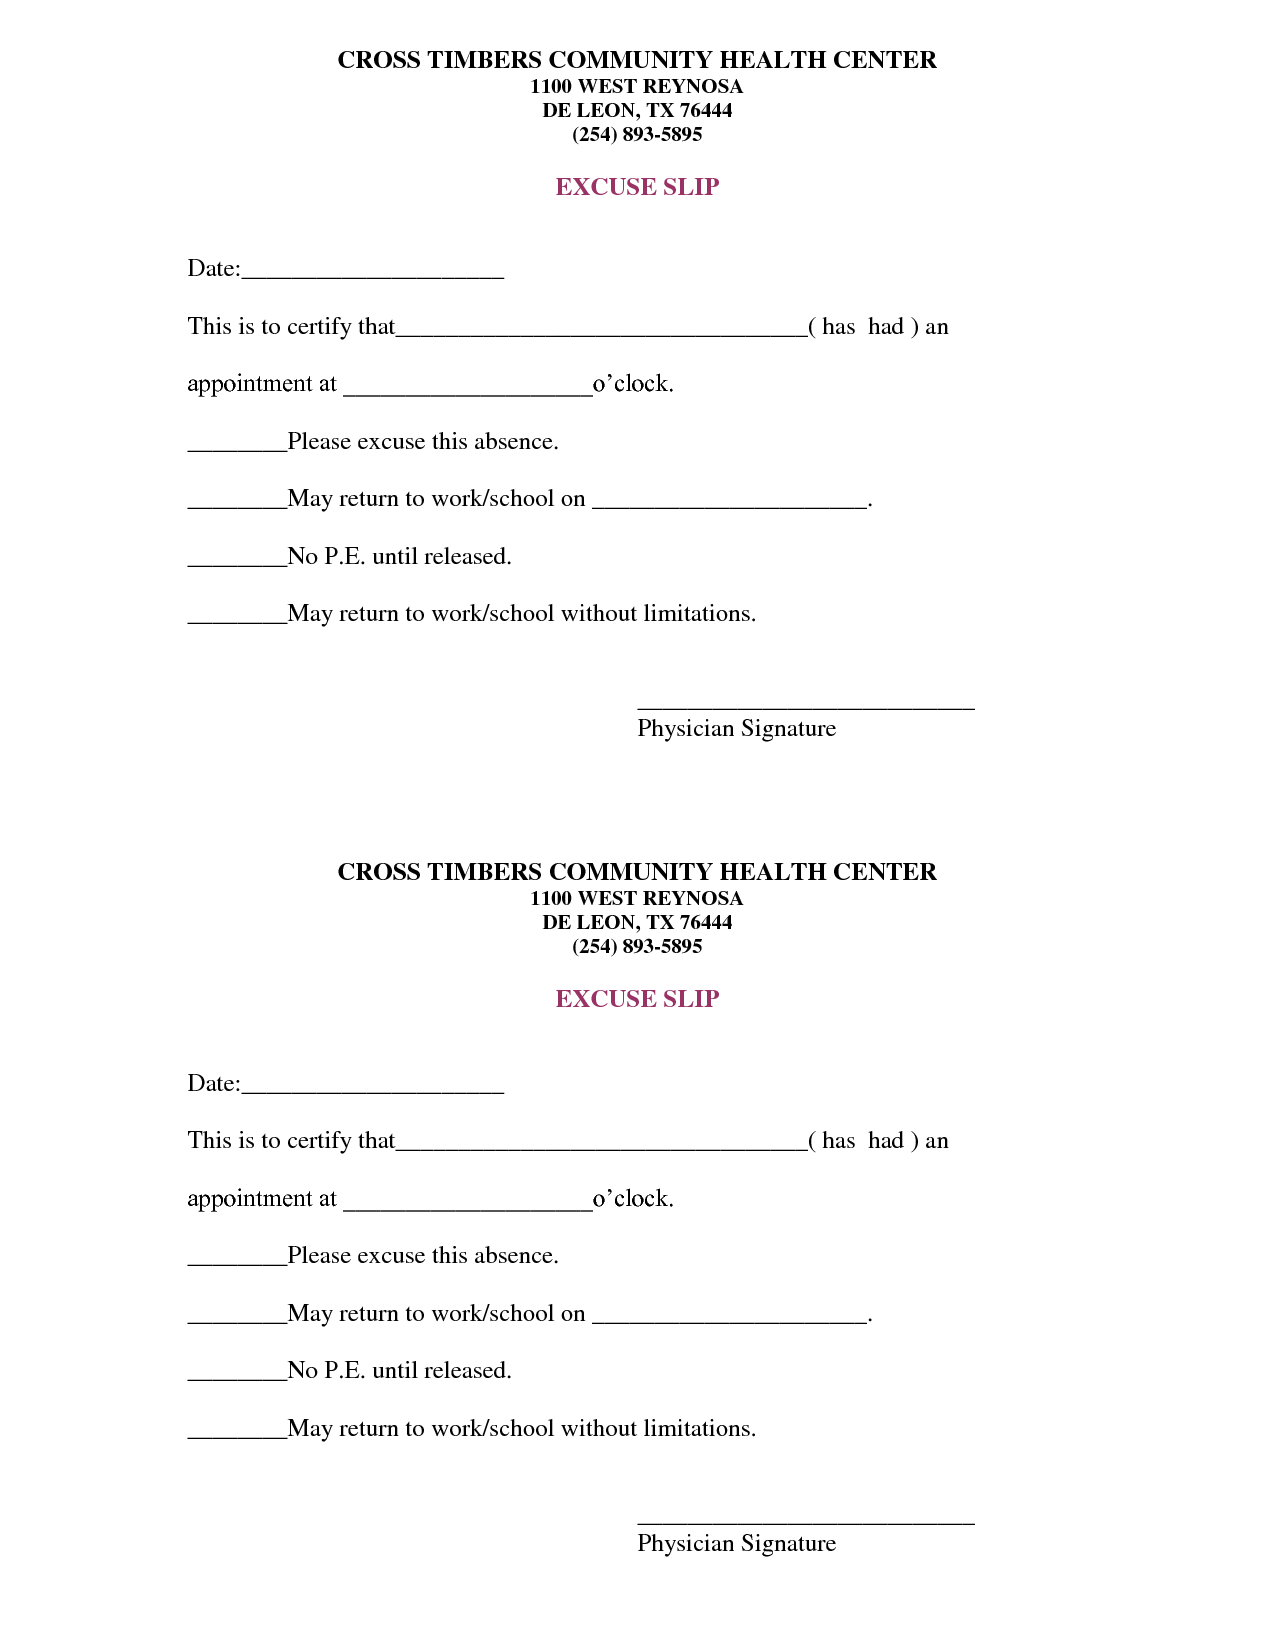 Free Doctors Note Template | Scope Of Work Template | On The Run - Free Printable Doctors Excuse For School